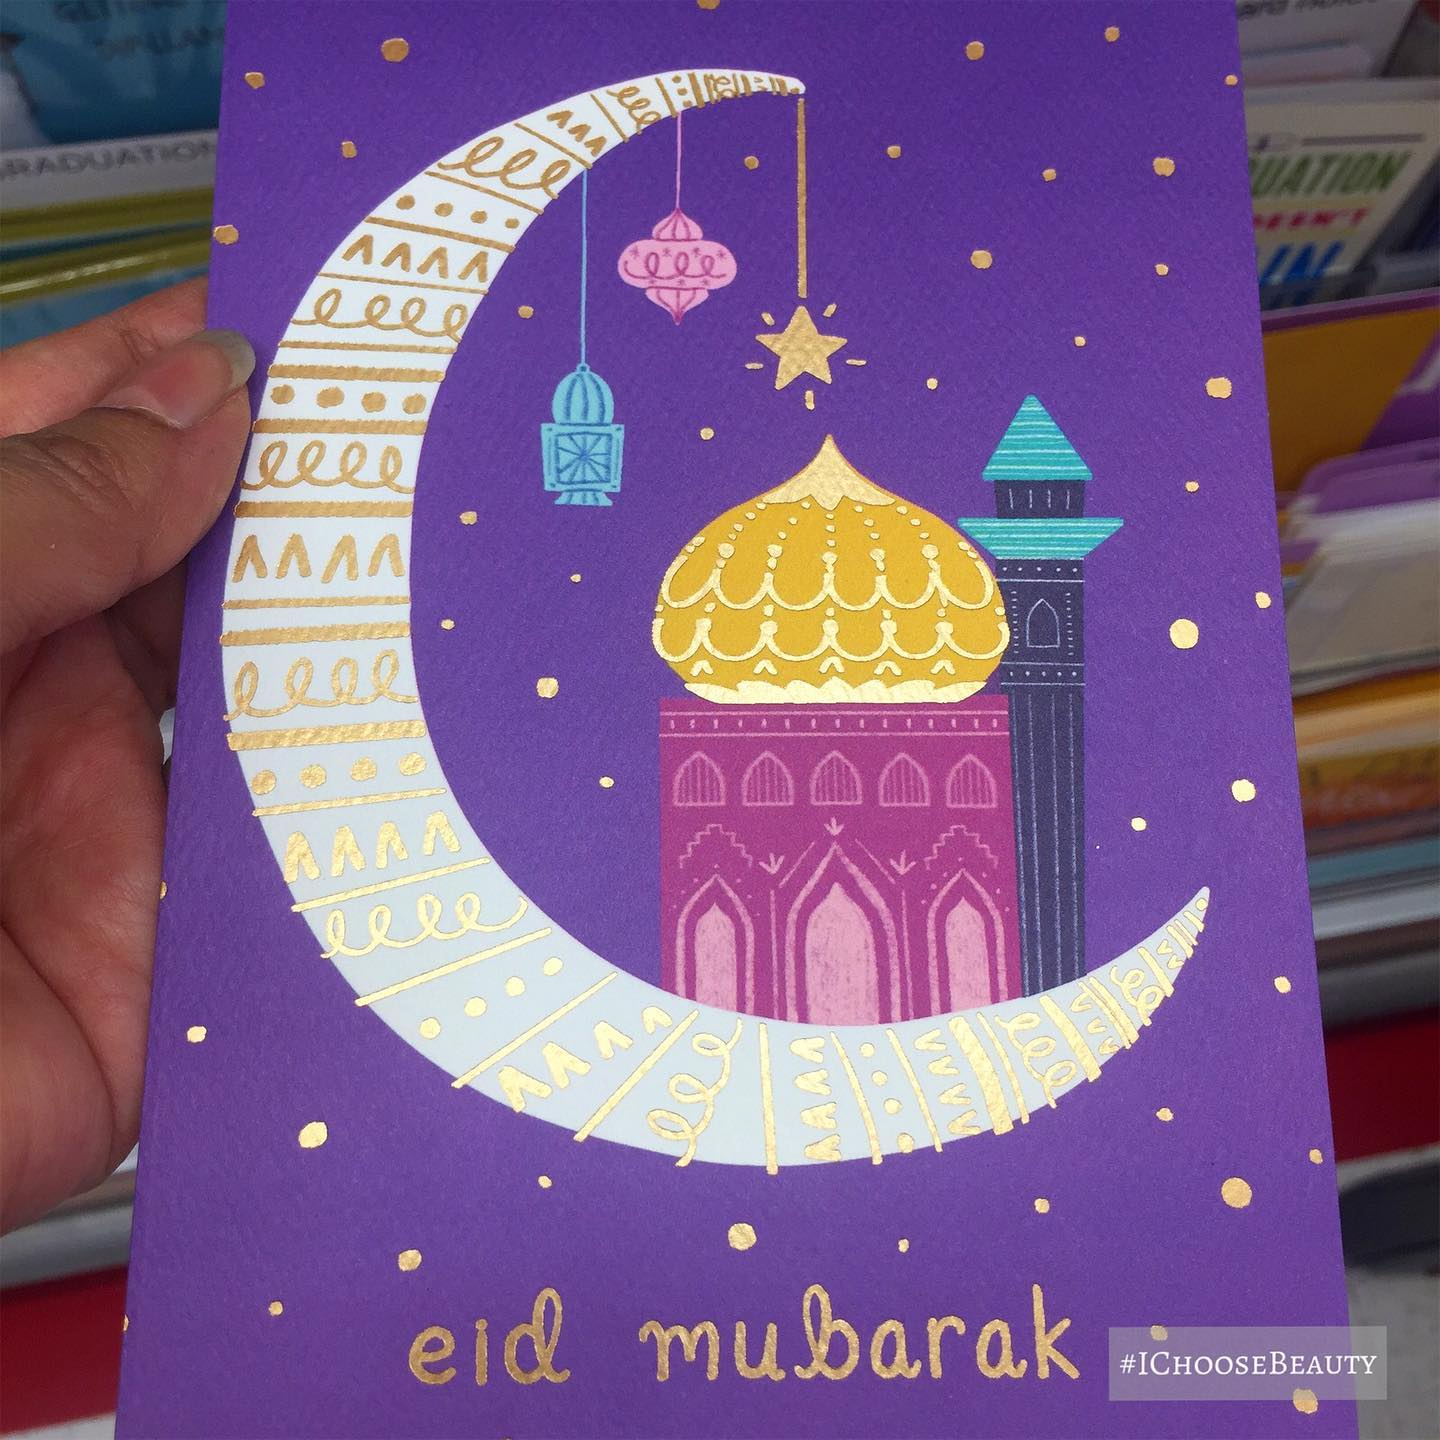 Seeing this card at Target brought tears to my eyes. It's nice to see this holiday finally get some widespread acknowledgement.  Eid Mubarak to all those who celebrate! ️️ #ichoosebeauty Day 2732